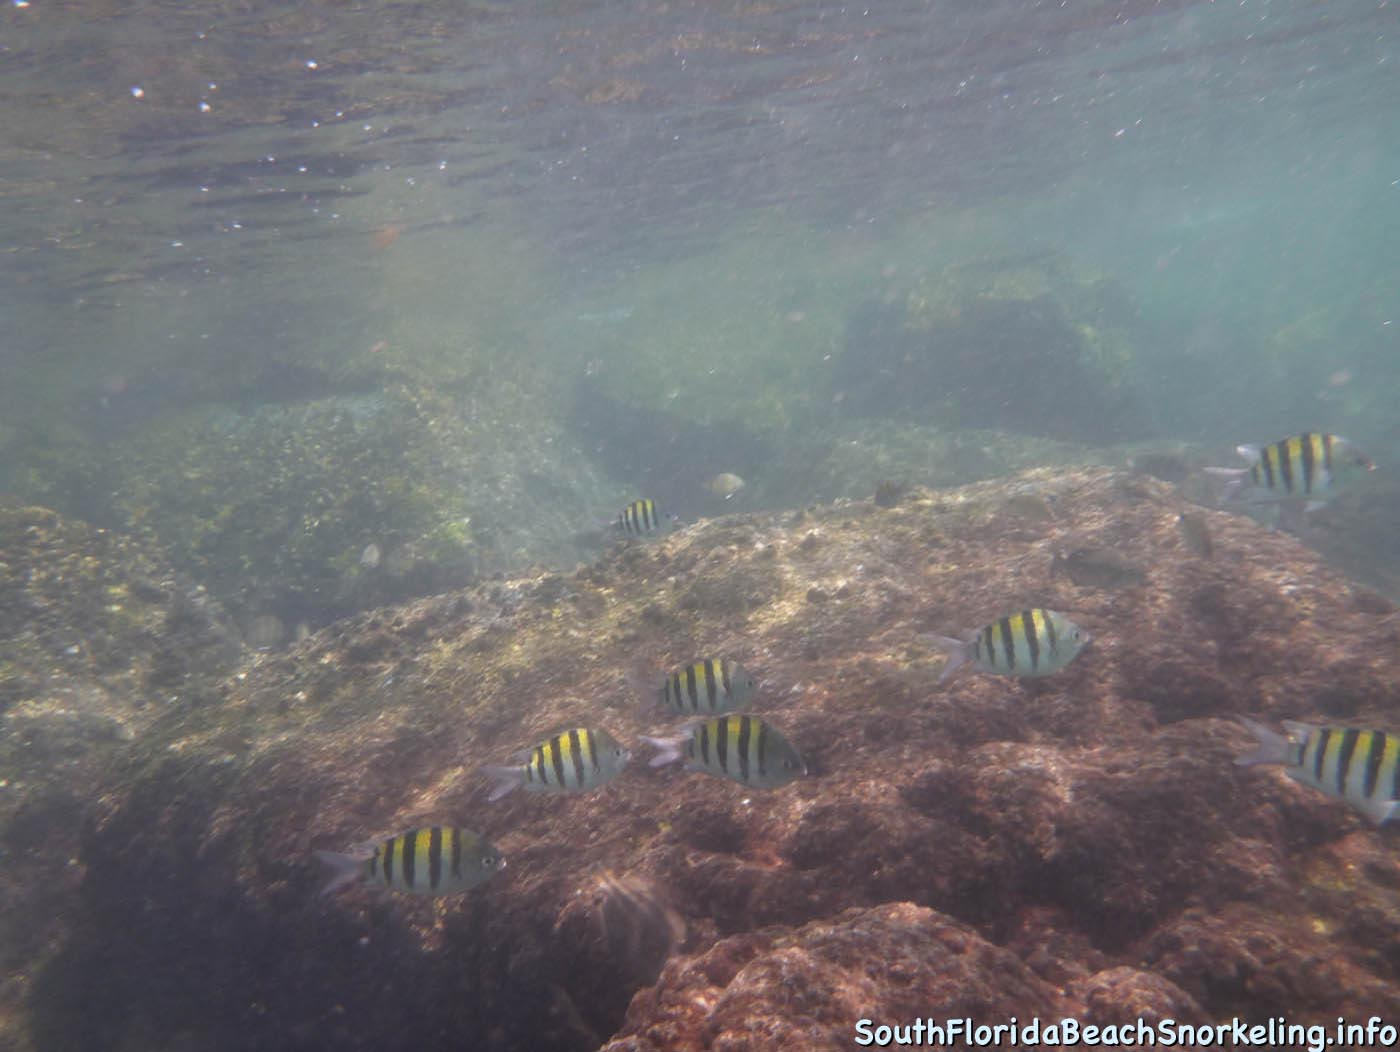 South_Side_Jetty_of_Port_of_Palm_Beach-southfloridabeachsnorkeling.info-18.jpg